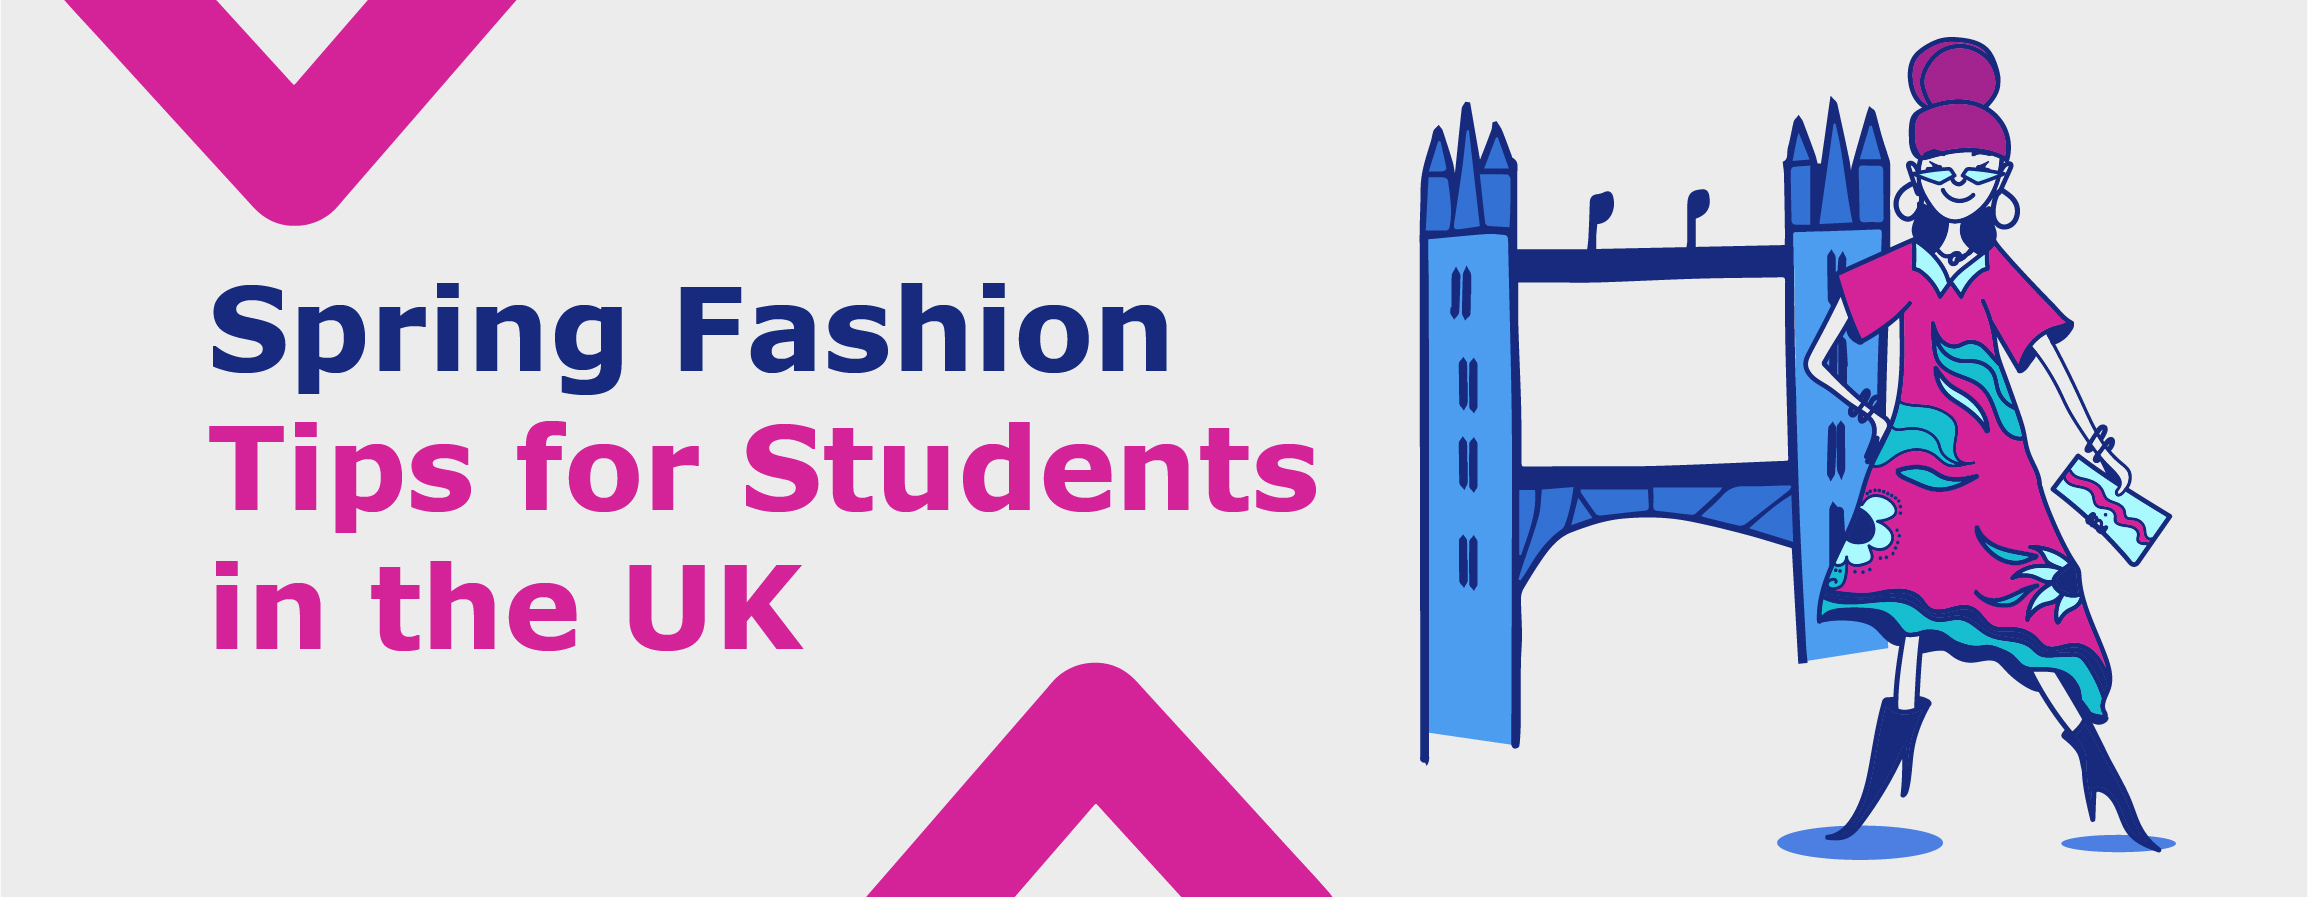 Spring Fashion Tips for Students in the UK